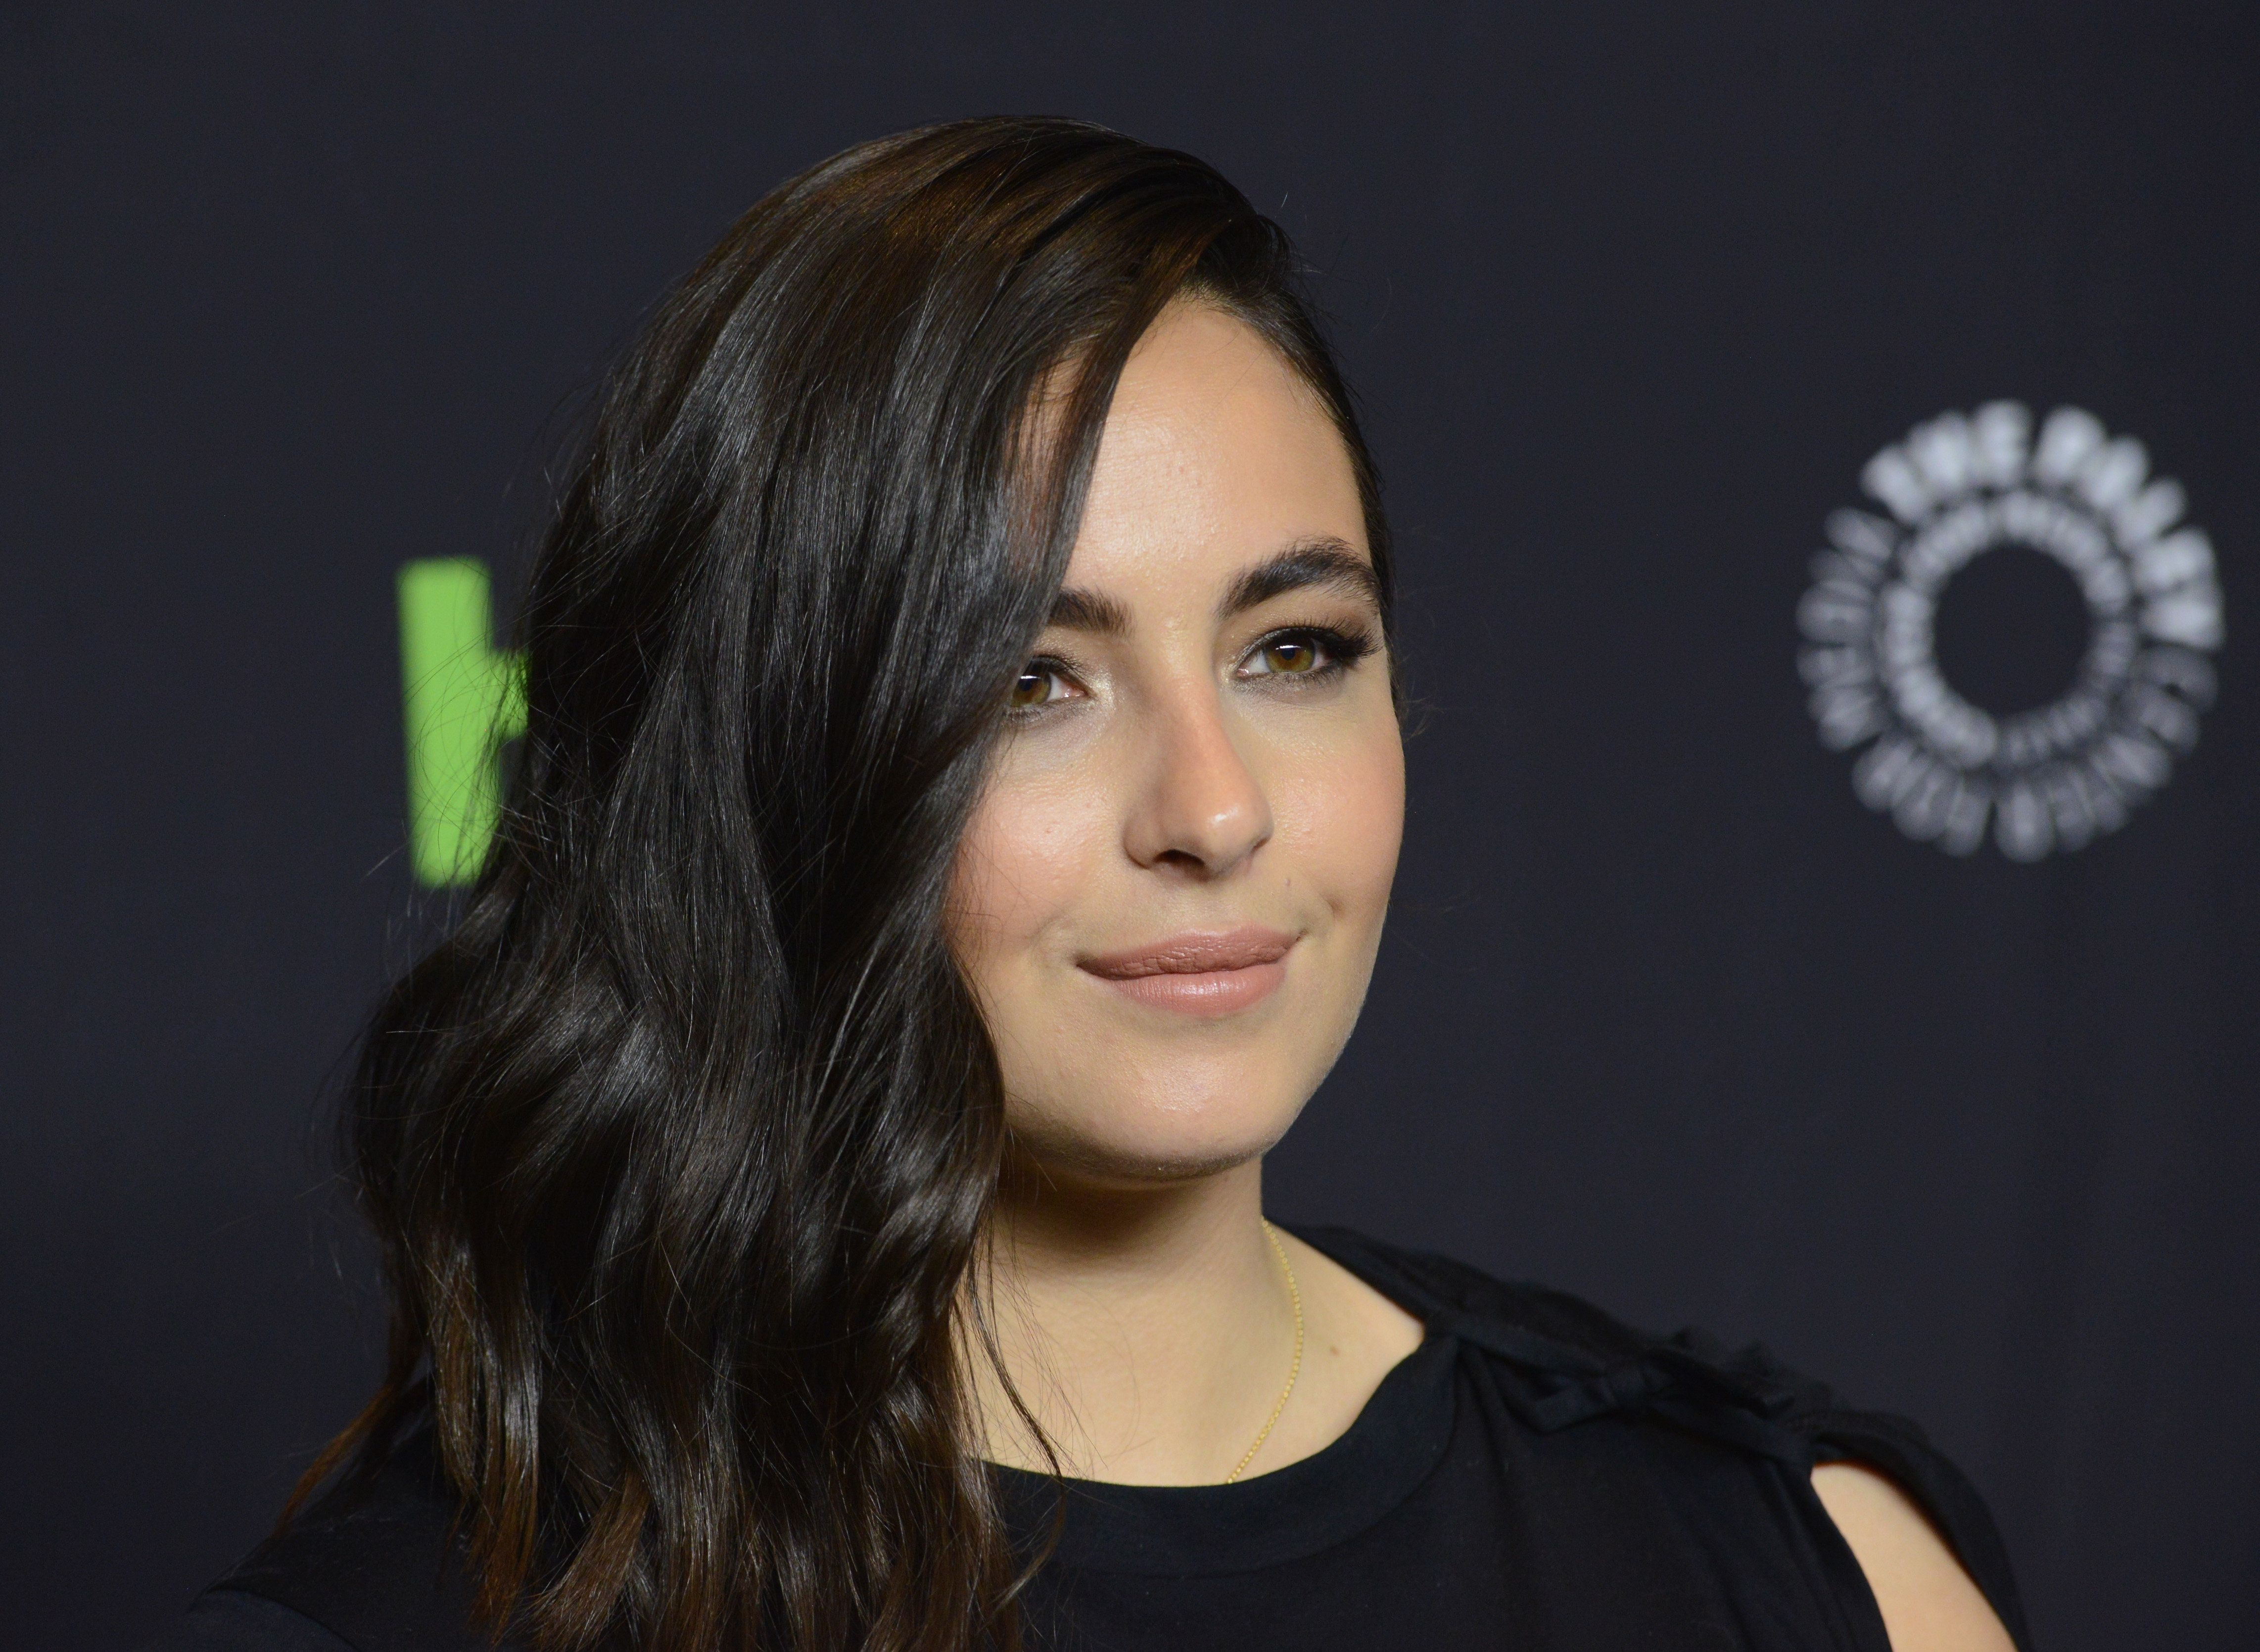 HOLLYWOOD, CA - MARCH 17:  Actress Alanna Masterson at The Paley Center For Media's 34th Annual PaleyFest Los Angeles - Opening Night Presentation: 'The Walking Dead' held at Dolby Theatre on March 17, 2017 in Hollywood, California.  (Photo by Albert L. Ortega/Getty Images)